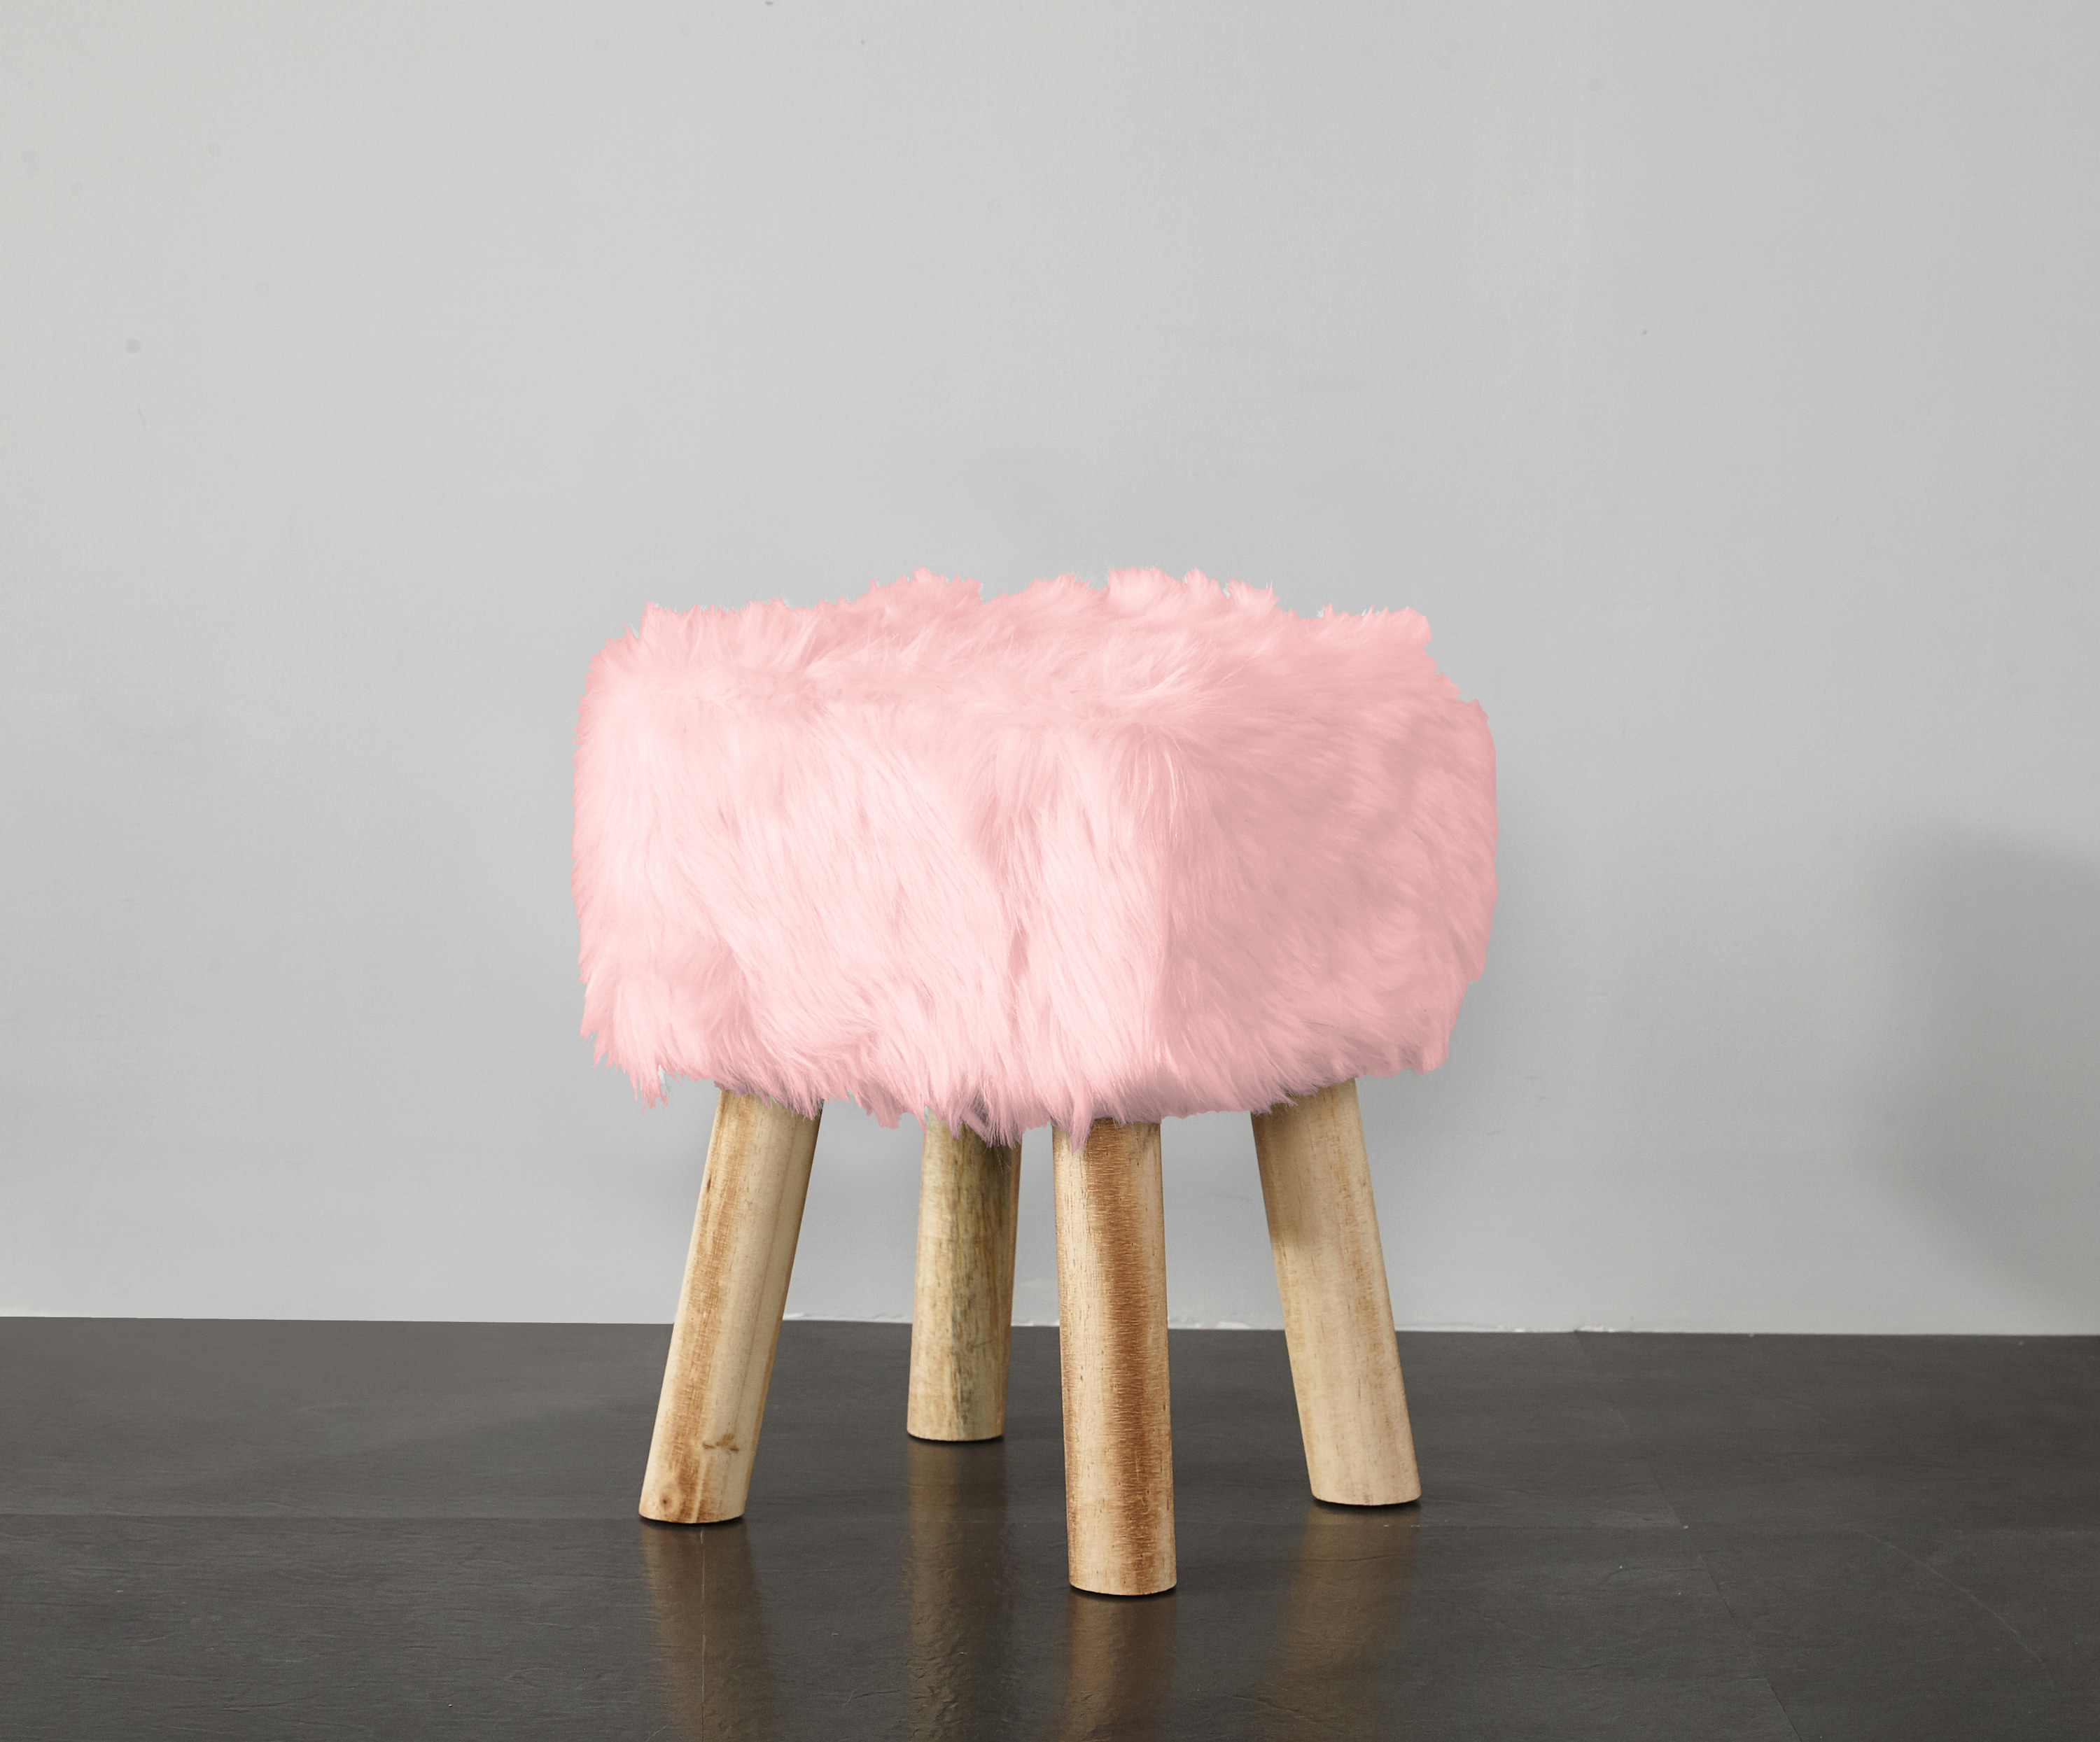 The pink faux fur stool